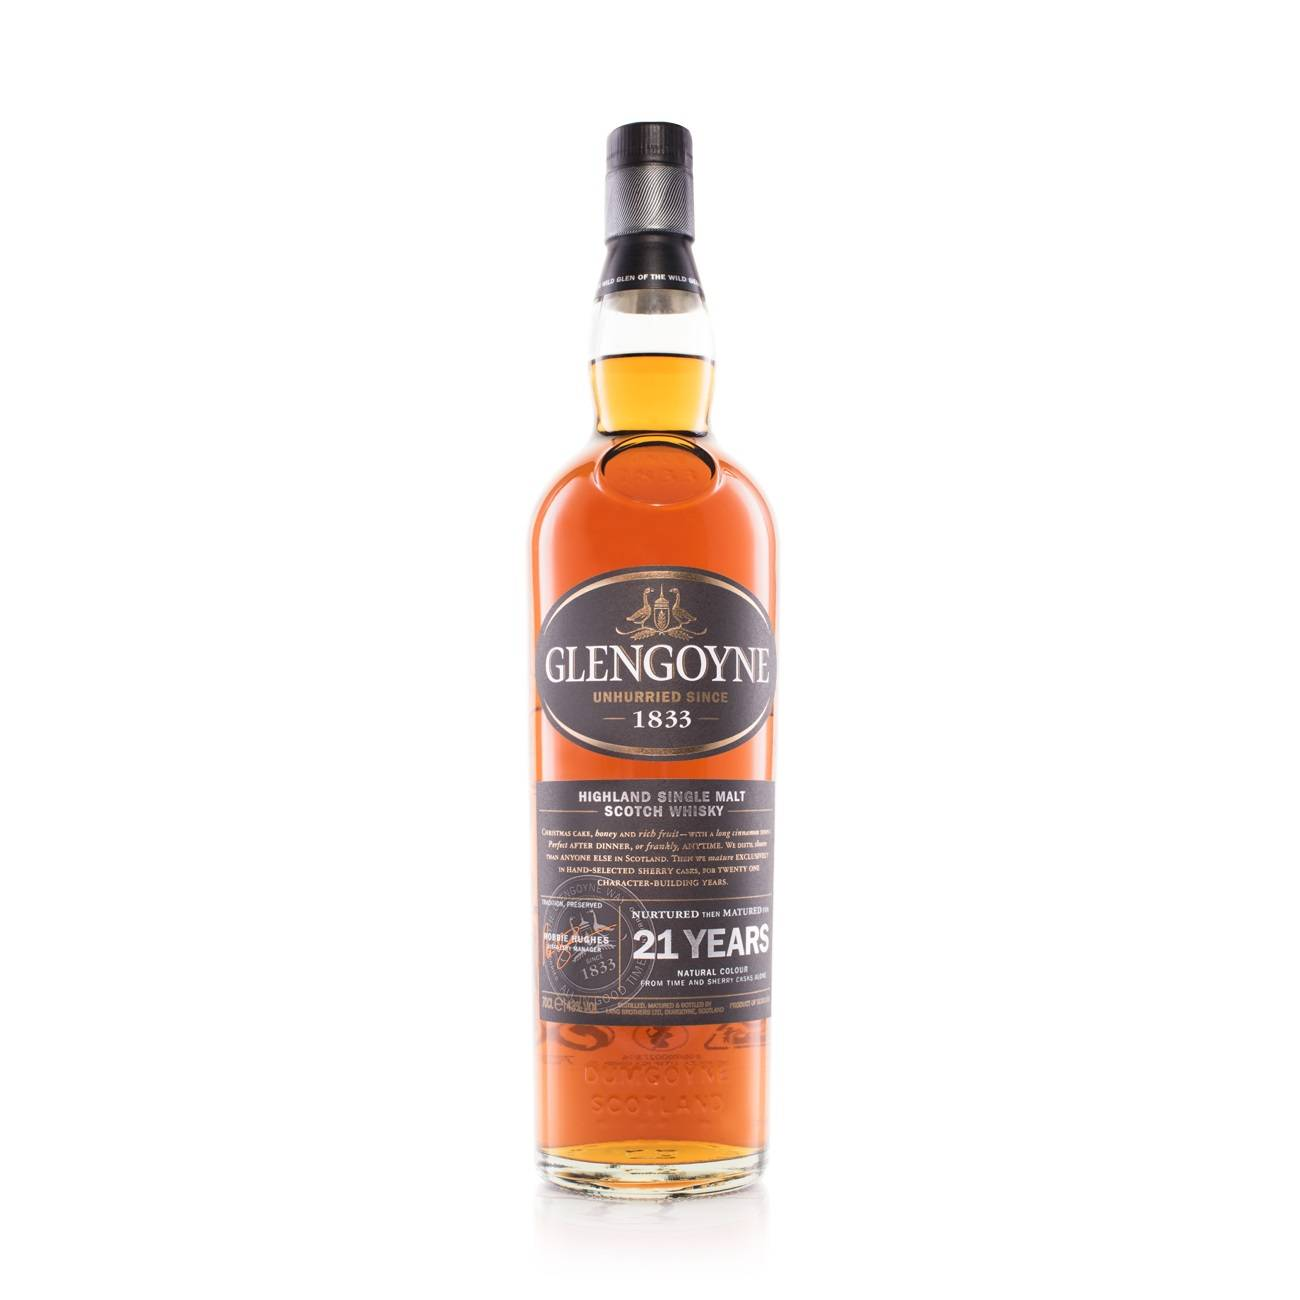 Whisky scotian, GLENGOYNE WHISKY MALT 21Y GIFTBOX 700 ML, Bowmore